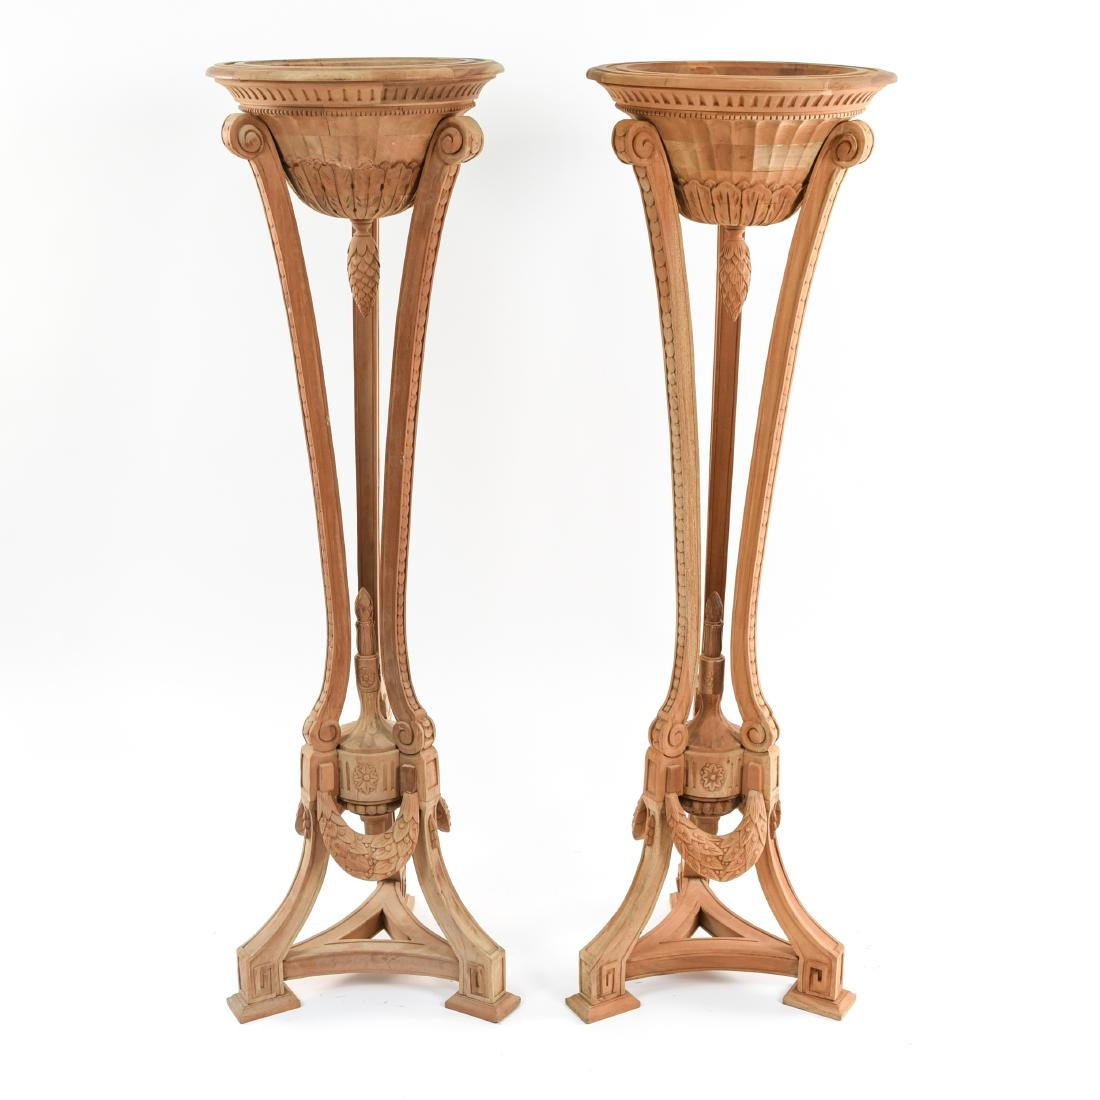 PAIR OF PEDESTAL PLANTERS